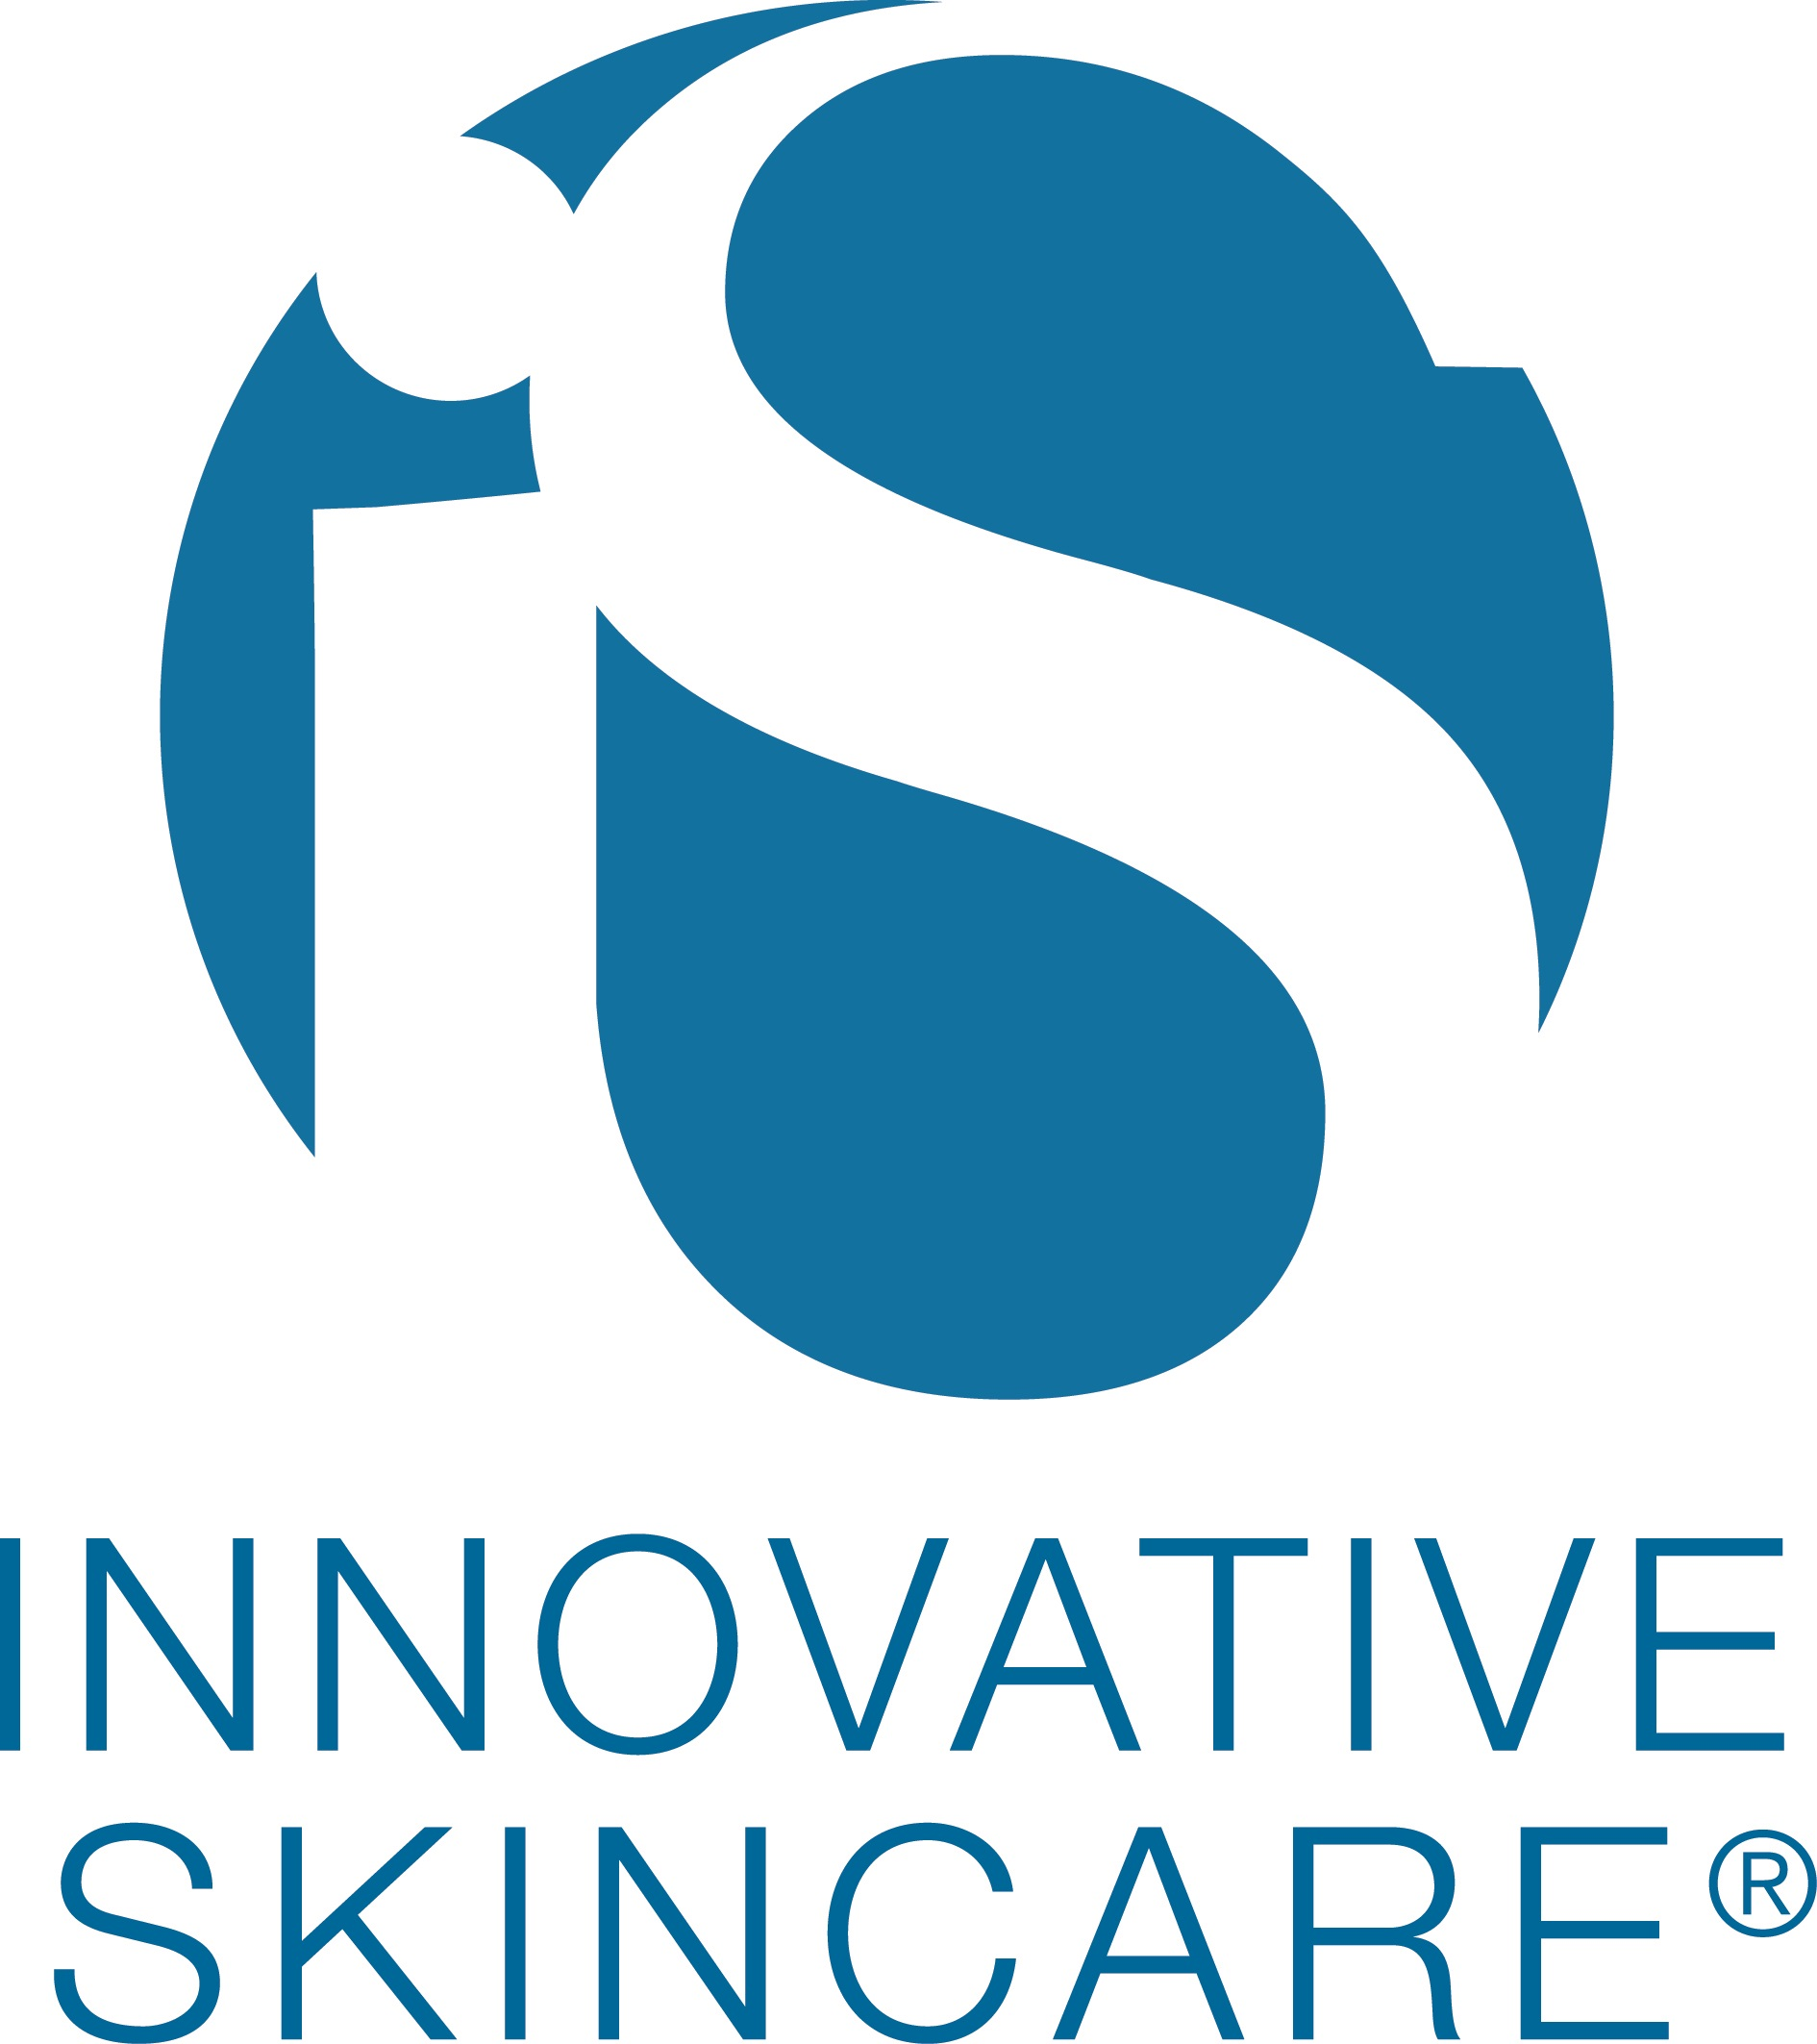 Innovative Skincare